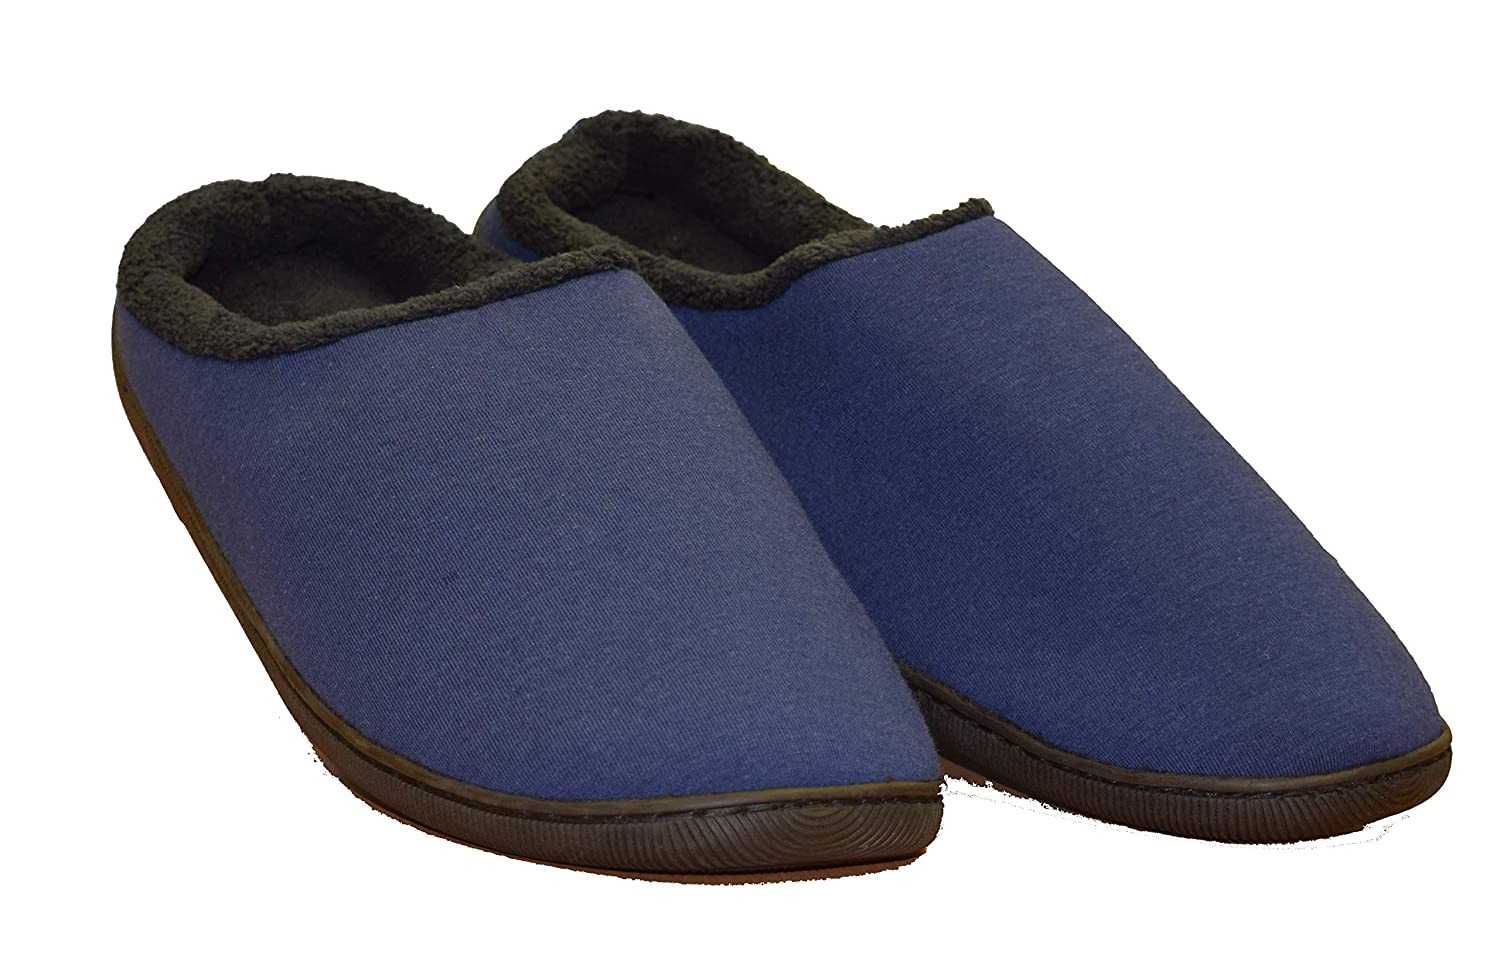 Fleece Lined Ultra Comfort Inside with Rubber Sole Side with Rubber Sole for Added Traction Inside Out Yogibo Slippers